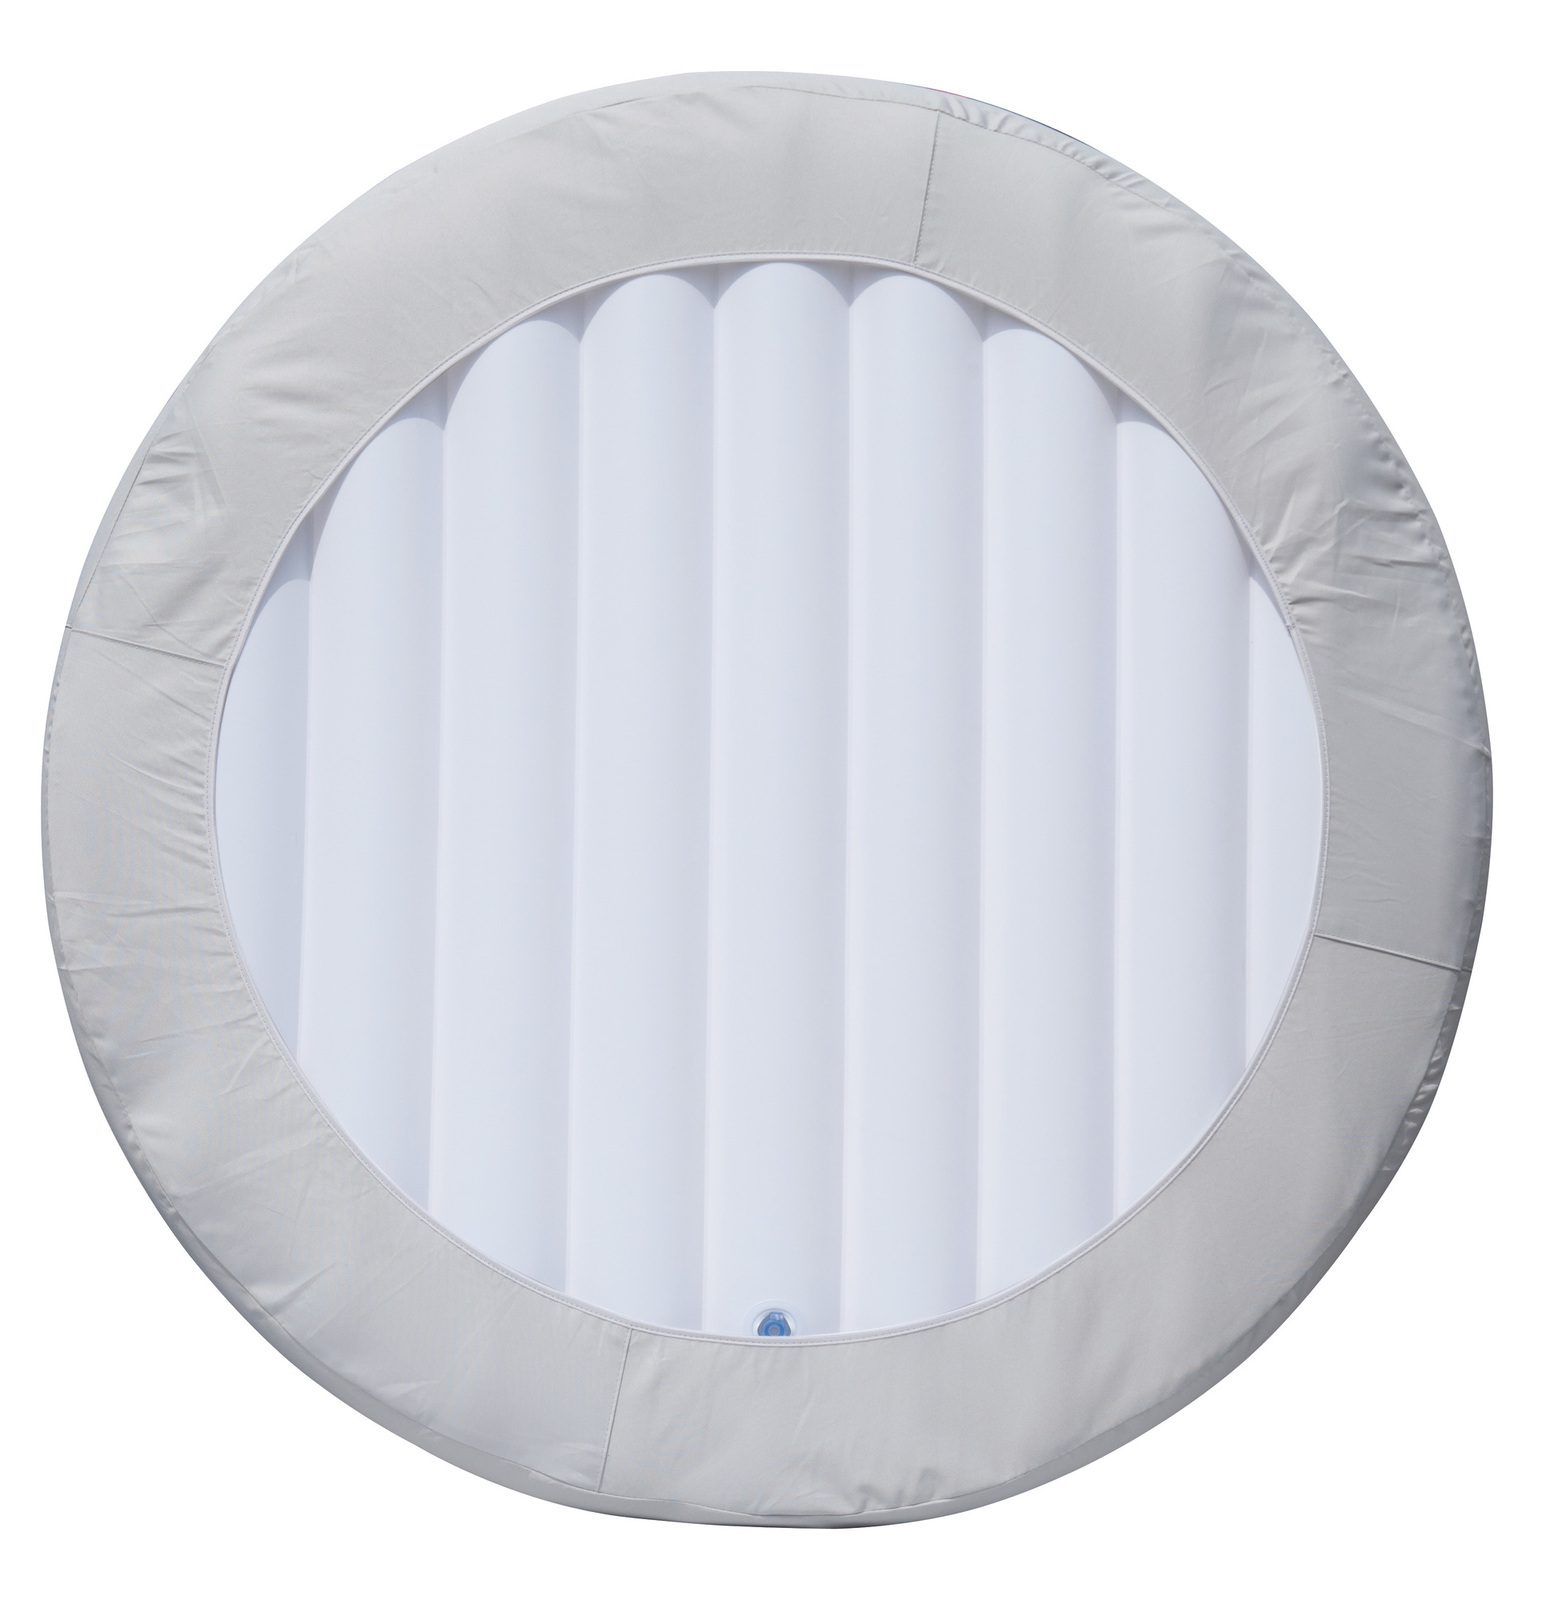 Bestway Inflatable Outdoor Portable Lay Z Spa Airjet